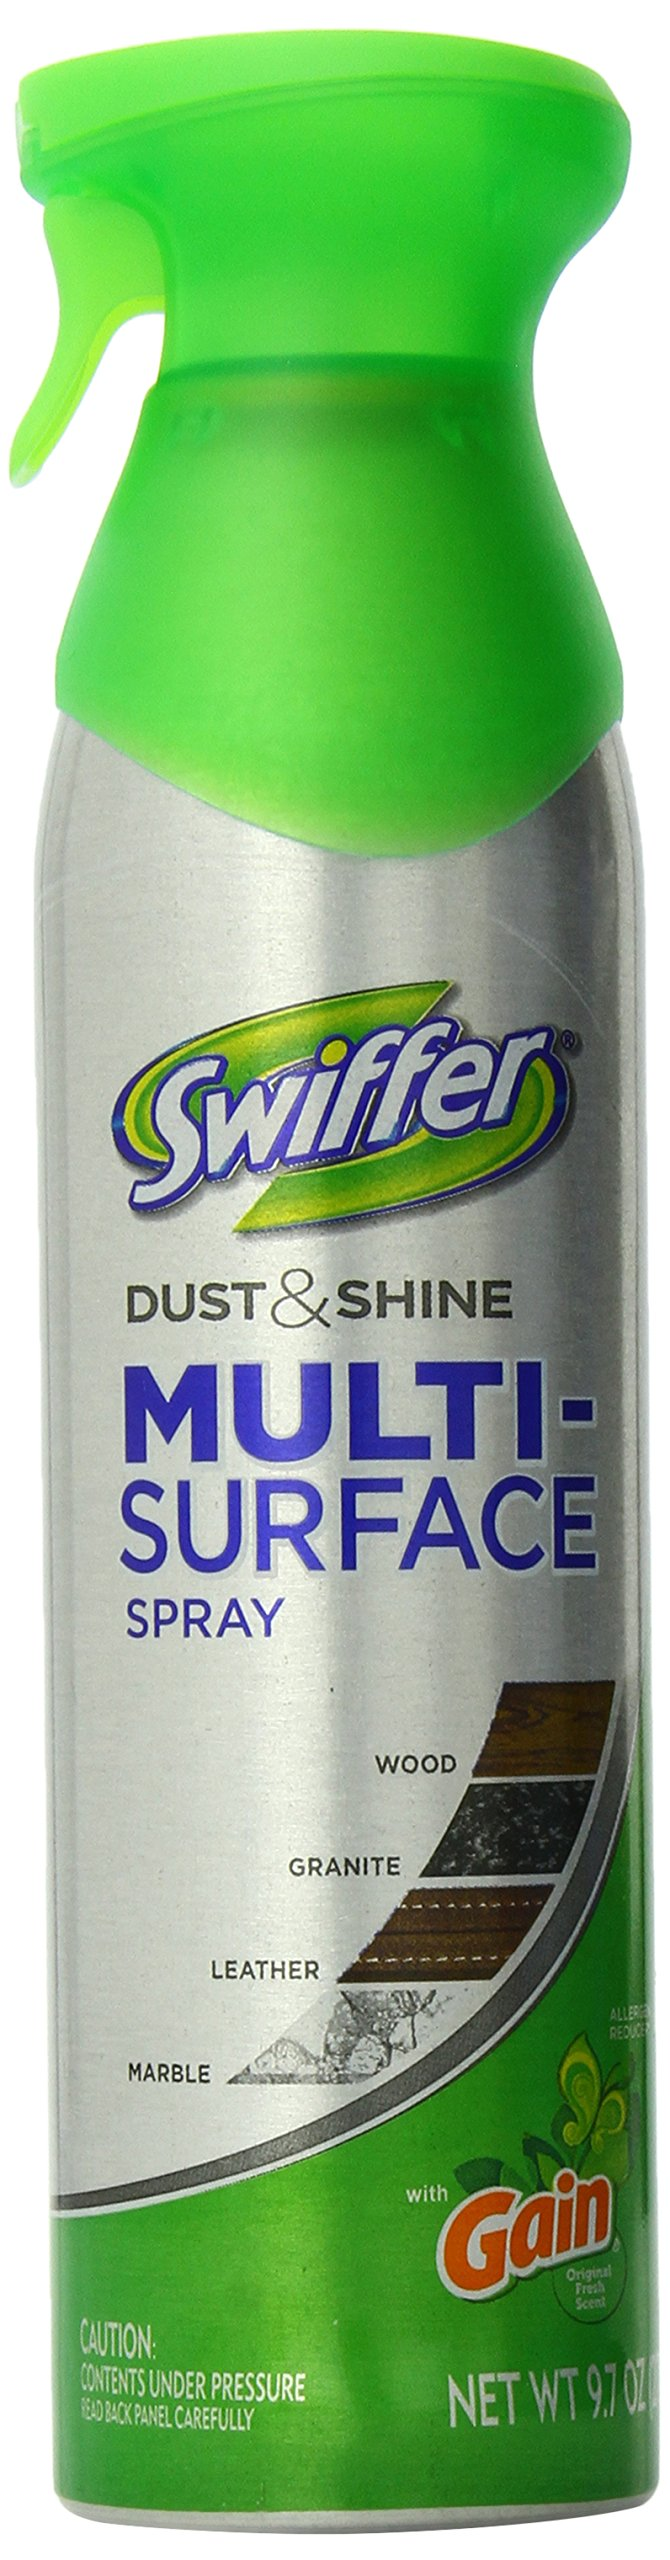 swiffer dust and shine surface cleaner 9 7. Black Bedroom Furniture Sets. Home Design Ideas